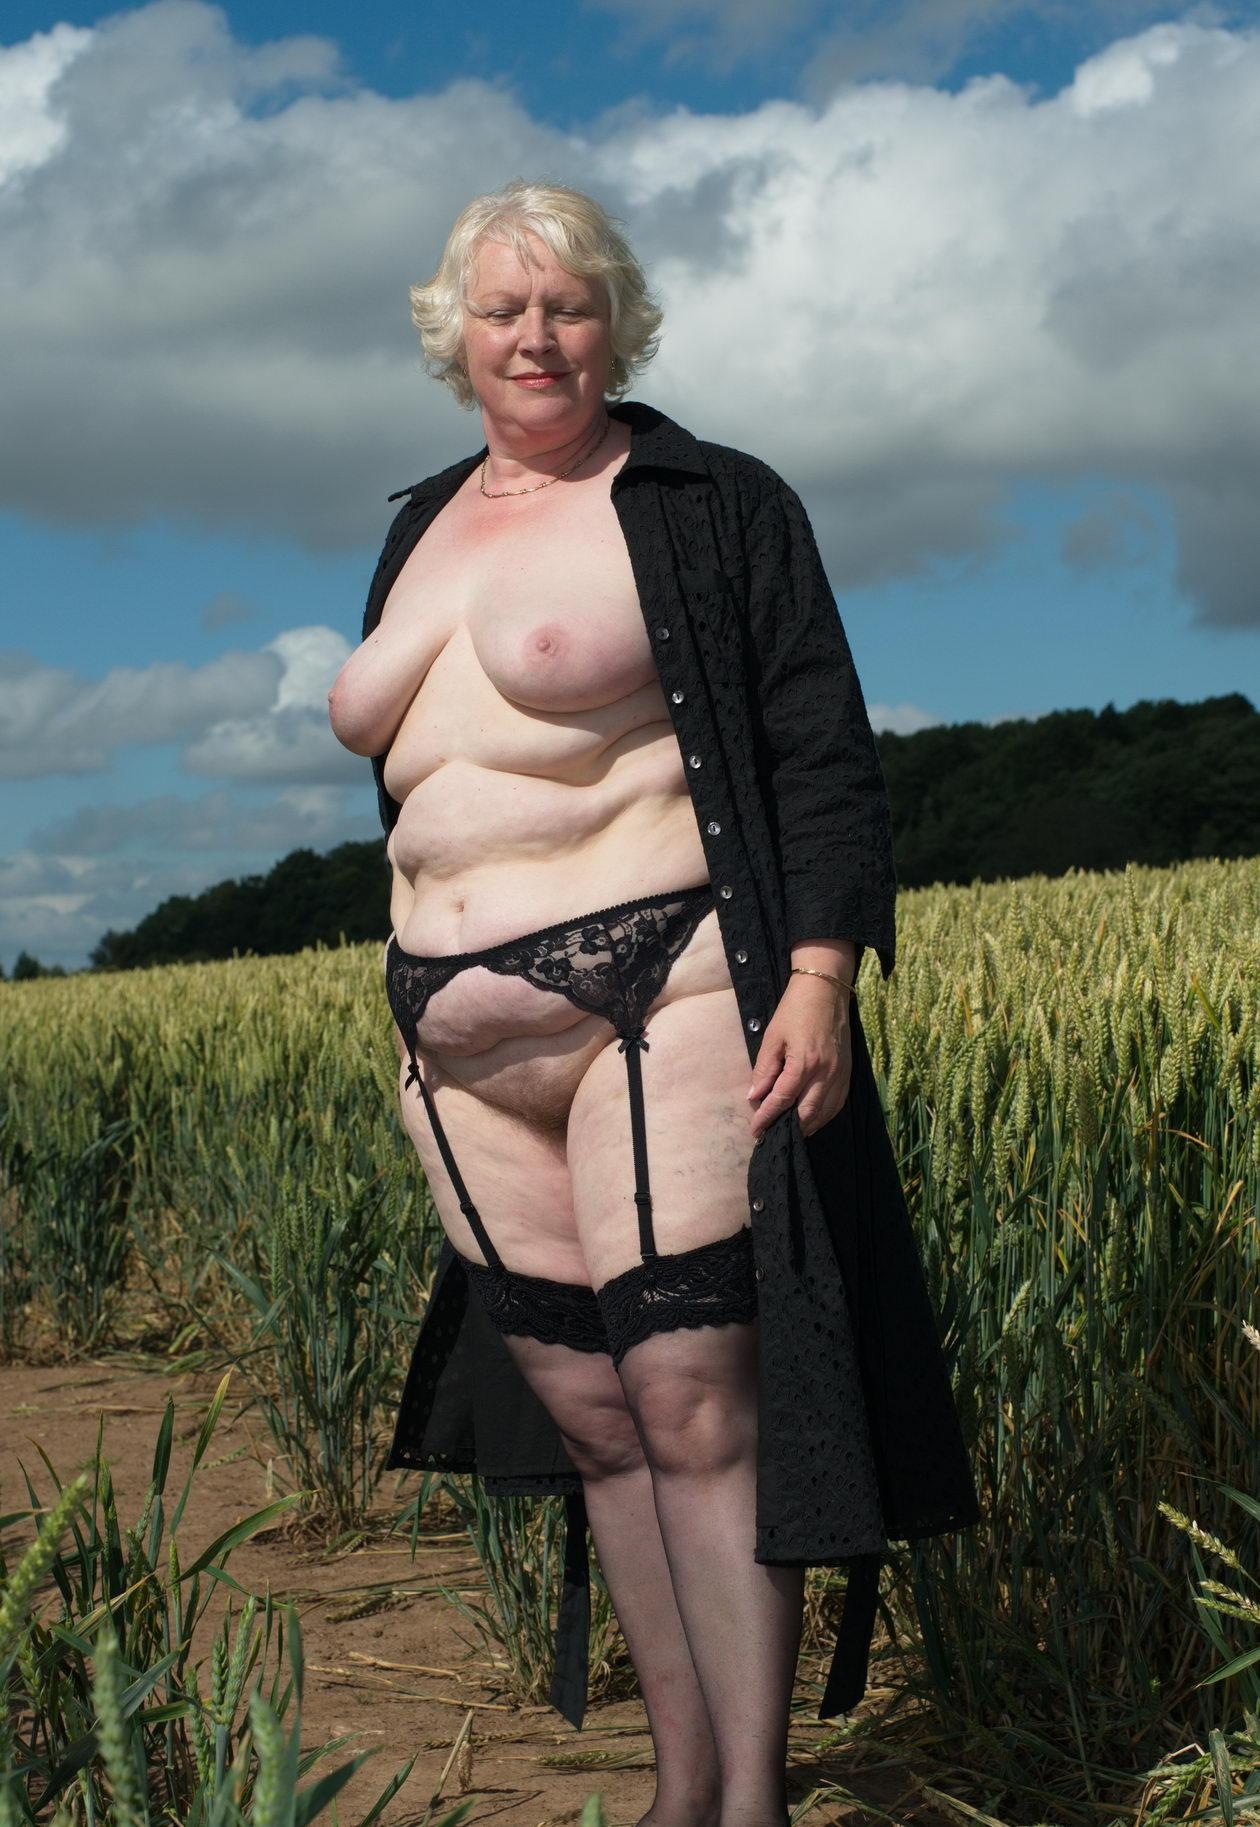 perverted granny likes wearing a corset outdoors